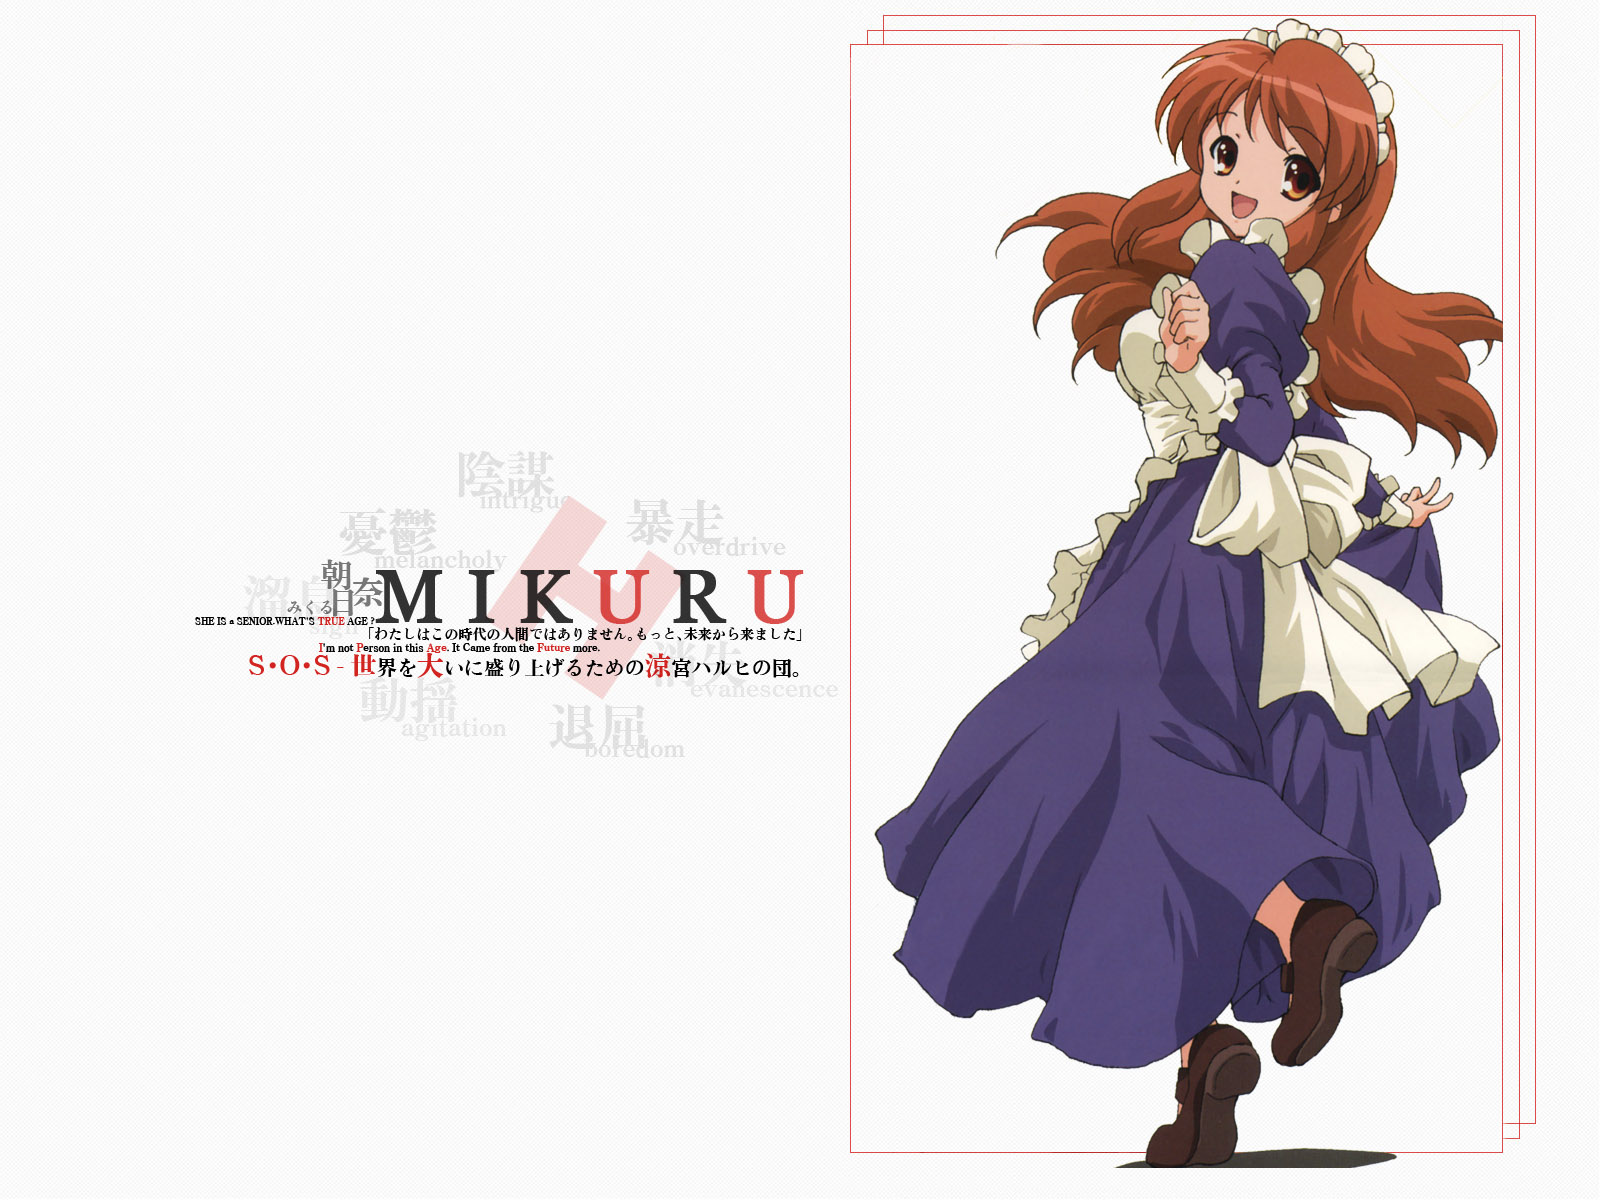 The Melancholy of Haruhi Suzumiya Anime Wallpaper # 2